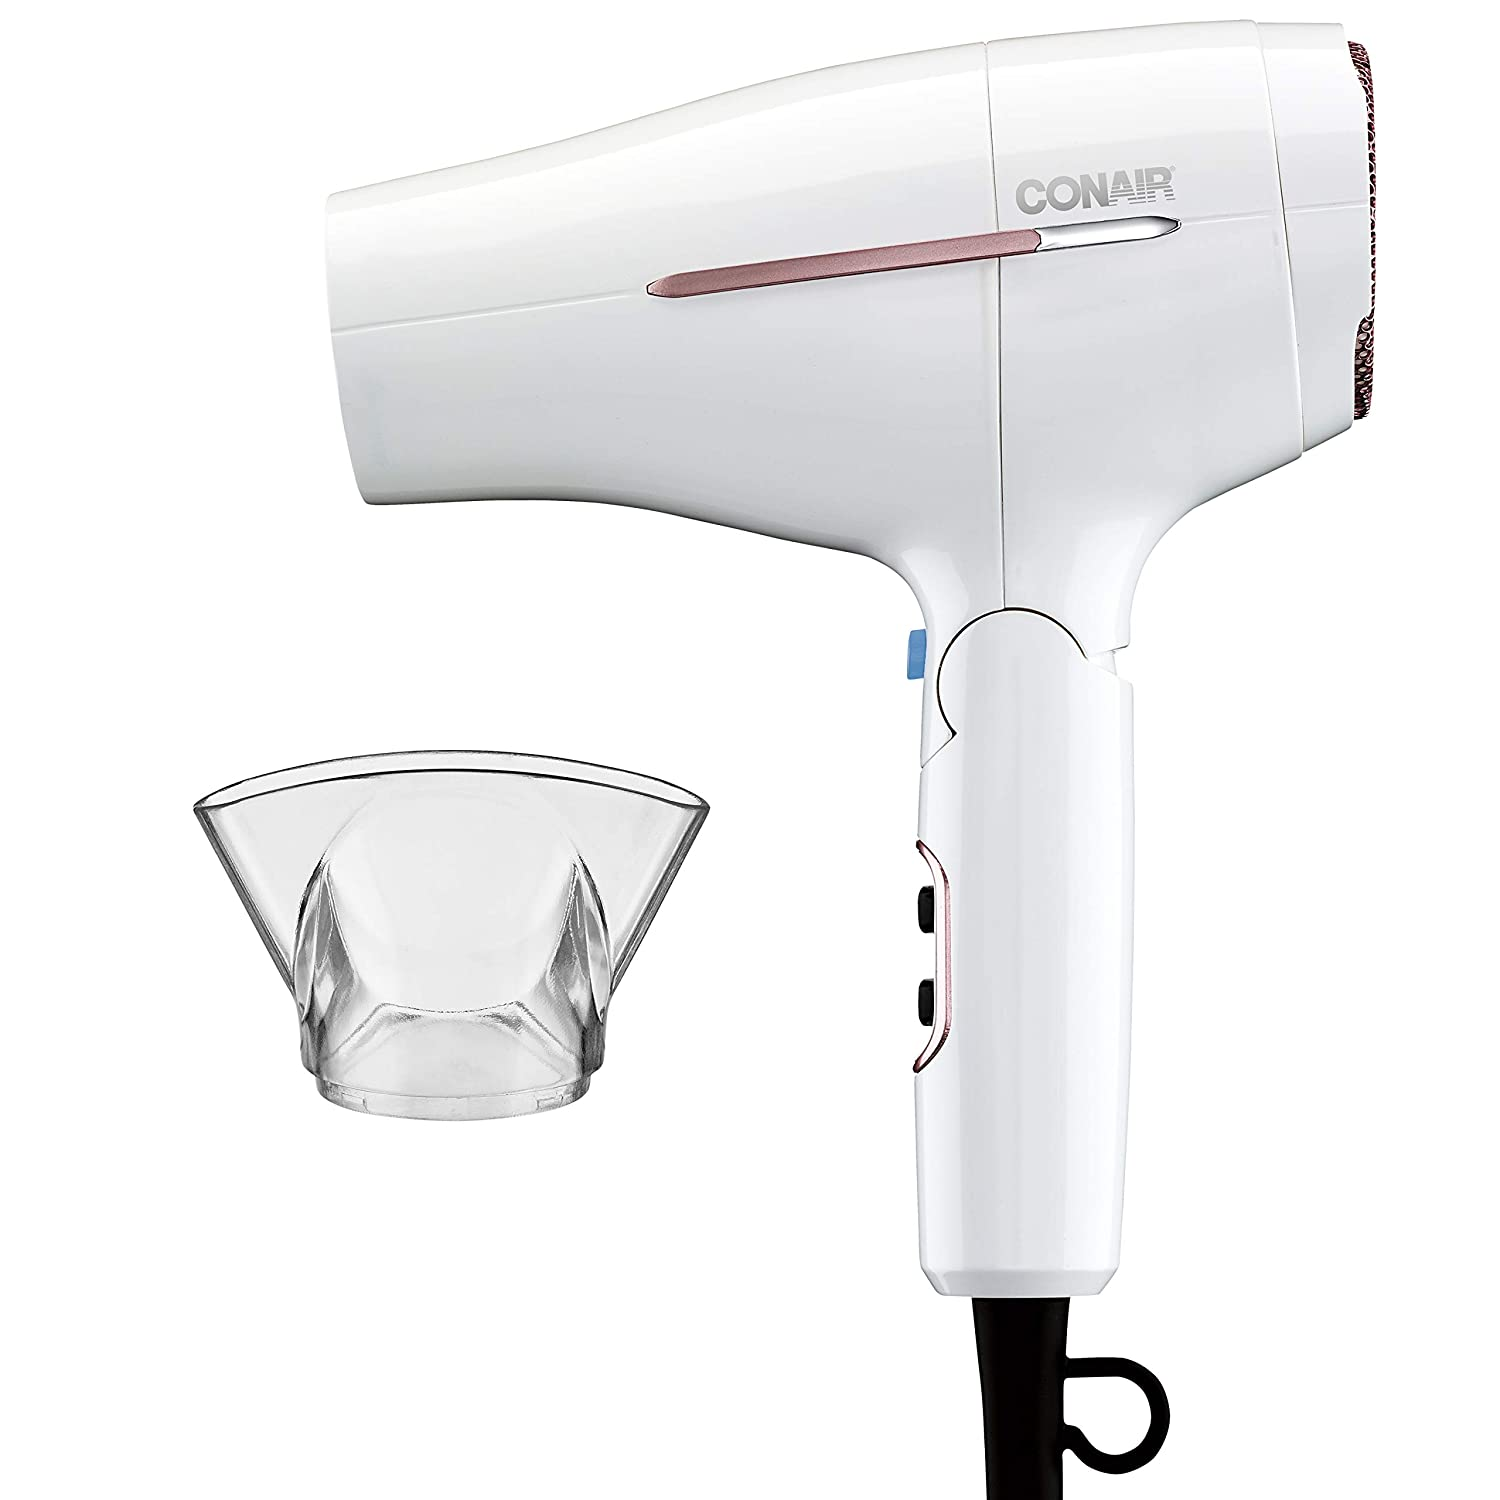 Conair 1875 Watt Worldwide Travel Hair Dryer with Smart Voltage Technology and Folding Handle